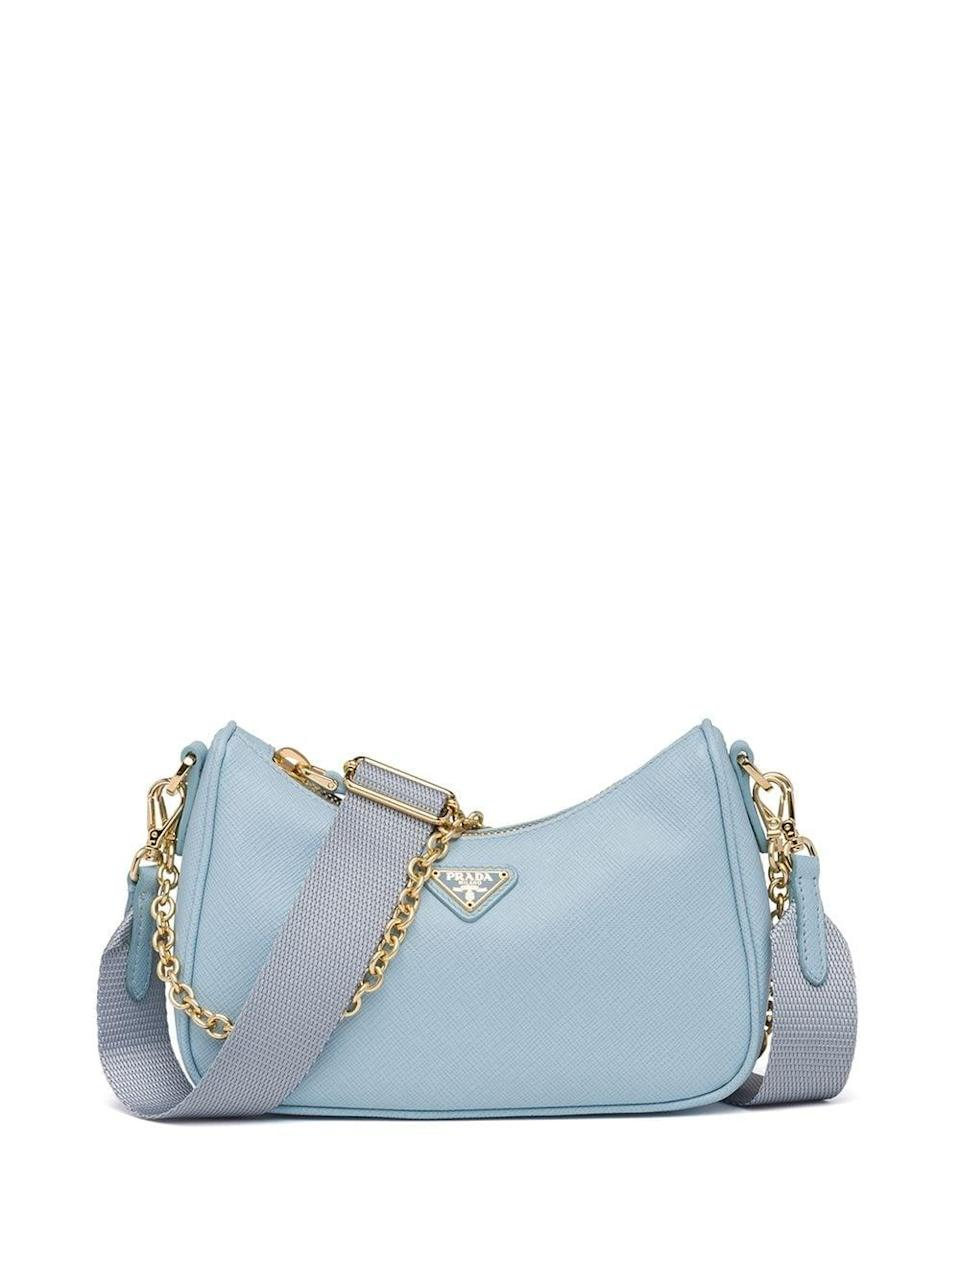 <p>The <span>Prada Saffiano Leather Mini Bag</span> ($1,490) is a clear winner. We love the baby blue mixed with gold hardware, and you can take off the nylon strap, making it a dainty shoulder bag.</p>